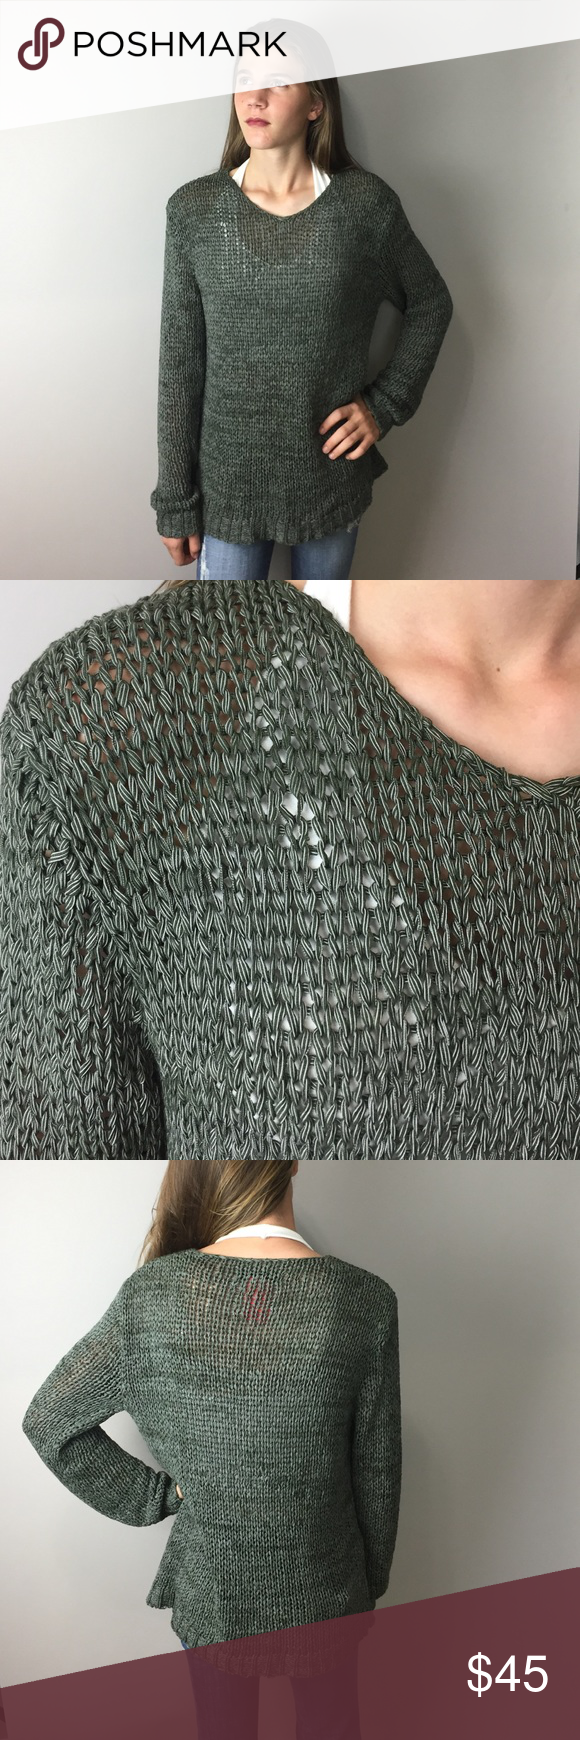 """Cue Green Knit Sweater M Great fishnet weave sweater from Australian designer Cue. There are no fabrication tags, but it's soft and stretchy. Feels like nylon/elastaine combo. Slight v neckline. Robbed at hems. 18"""" armpit to armpit, 23"""" shoulder to hem. Excellent condition. A955 Cue Sweaters Crew & Scoop Necks"""